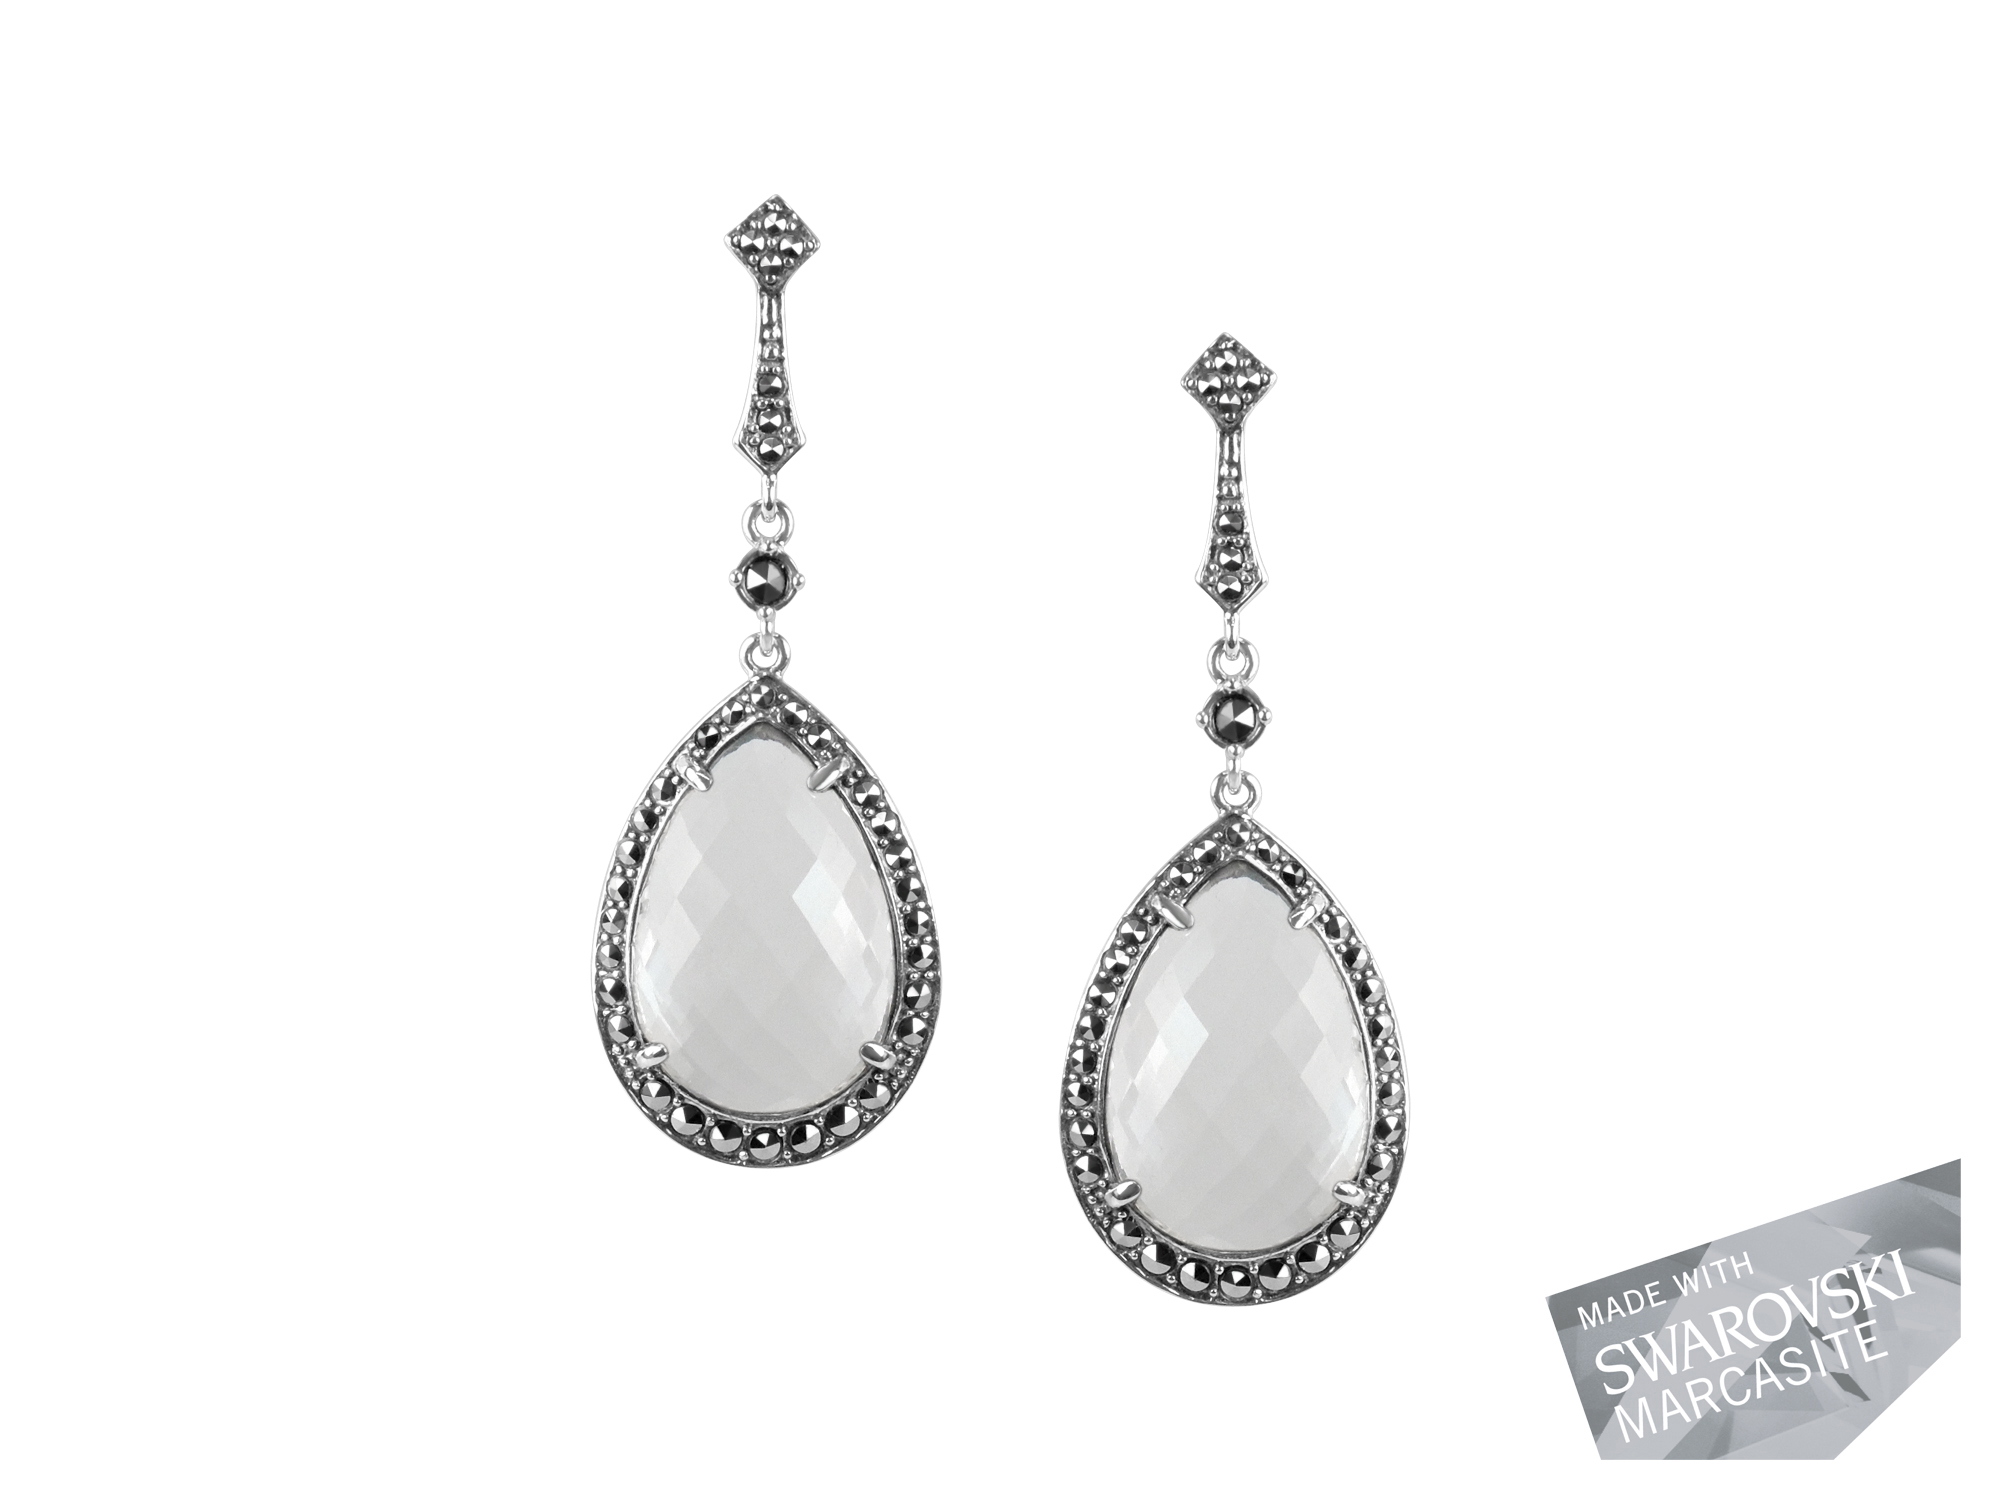 Clear Quartz Earrings MJ19492